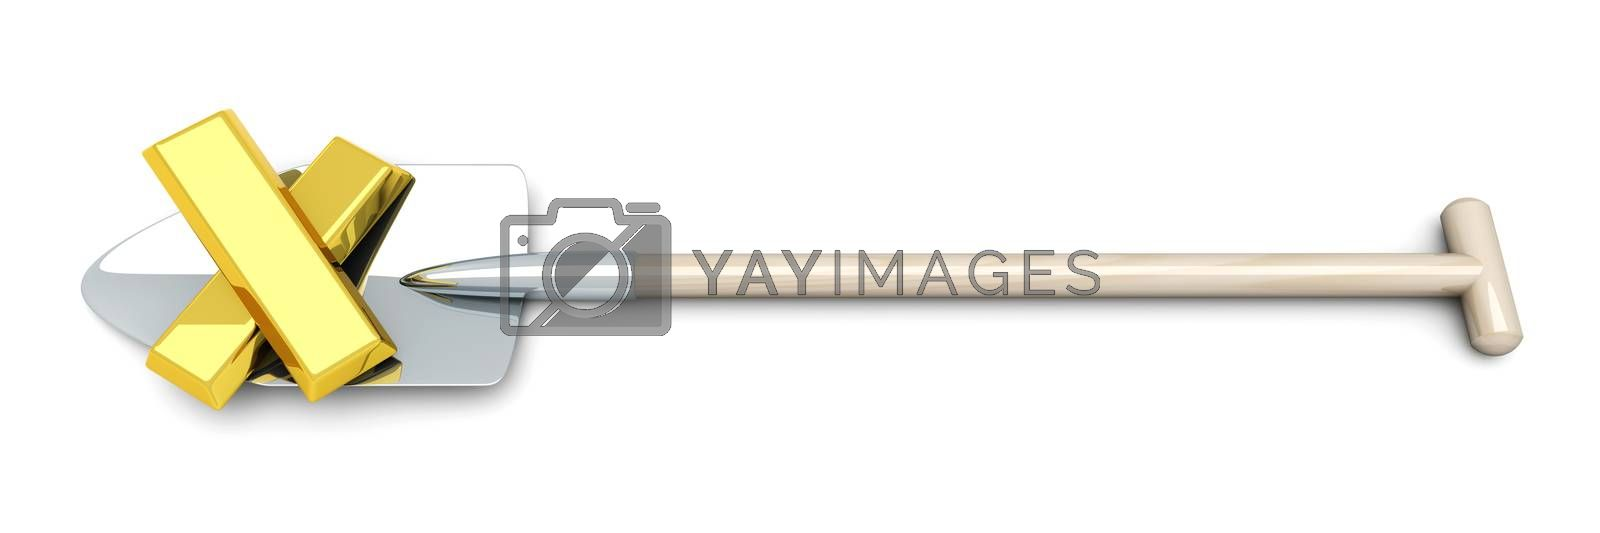 3D rendered Illustration. Isolated on white. Digging out the Gold.